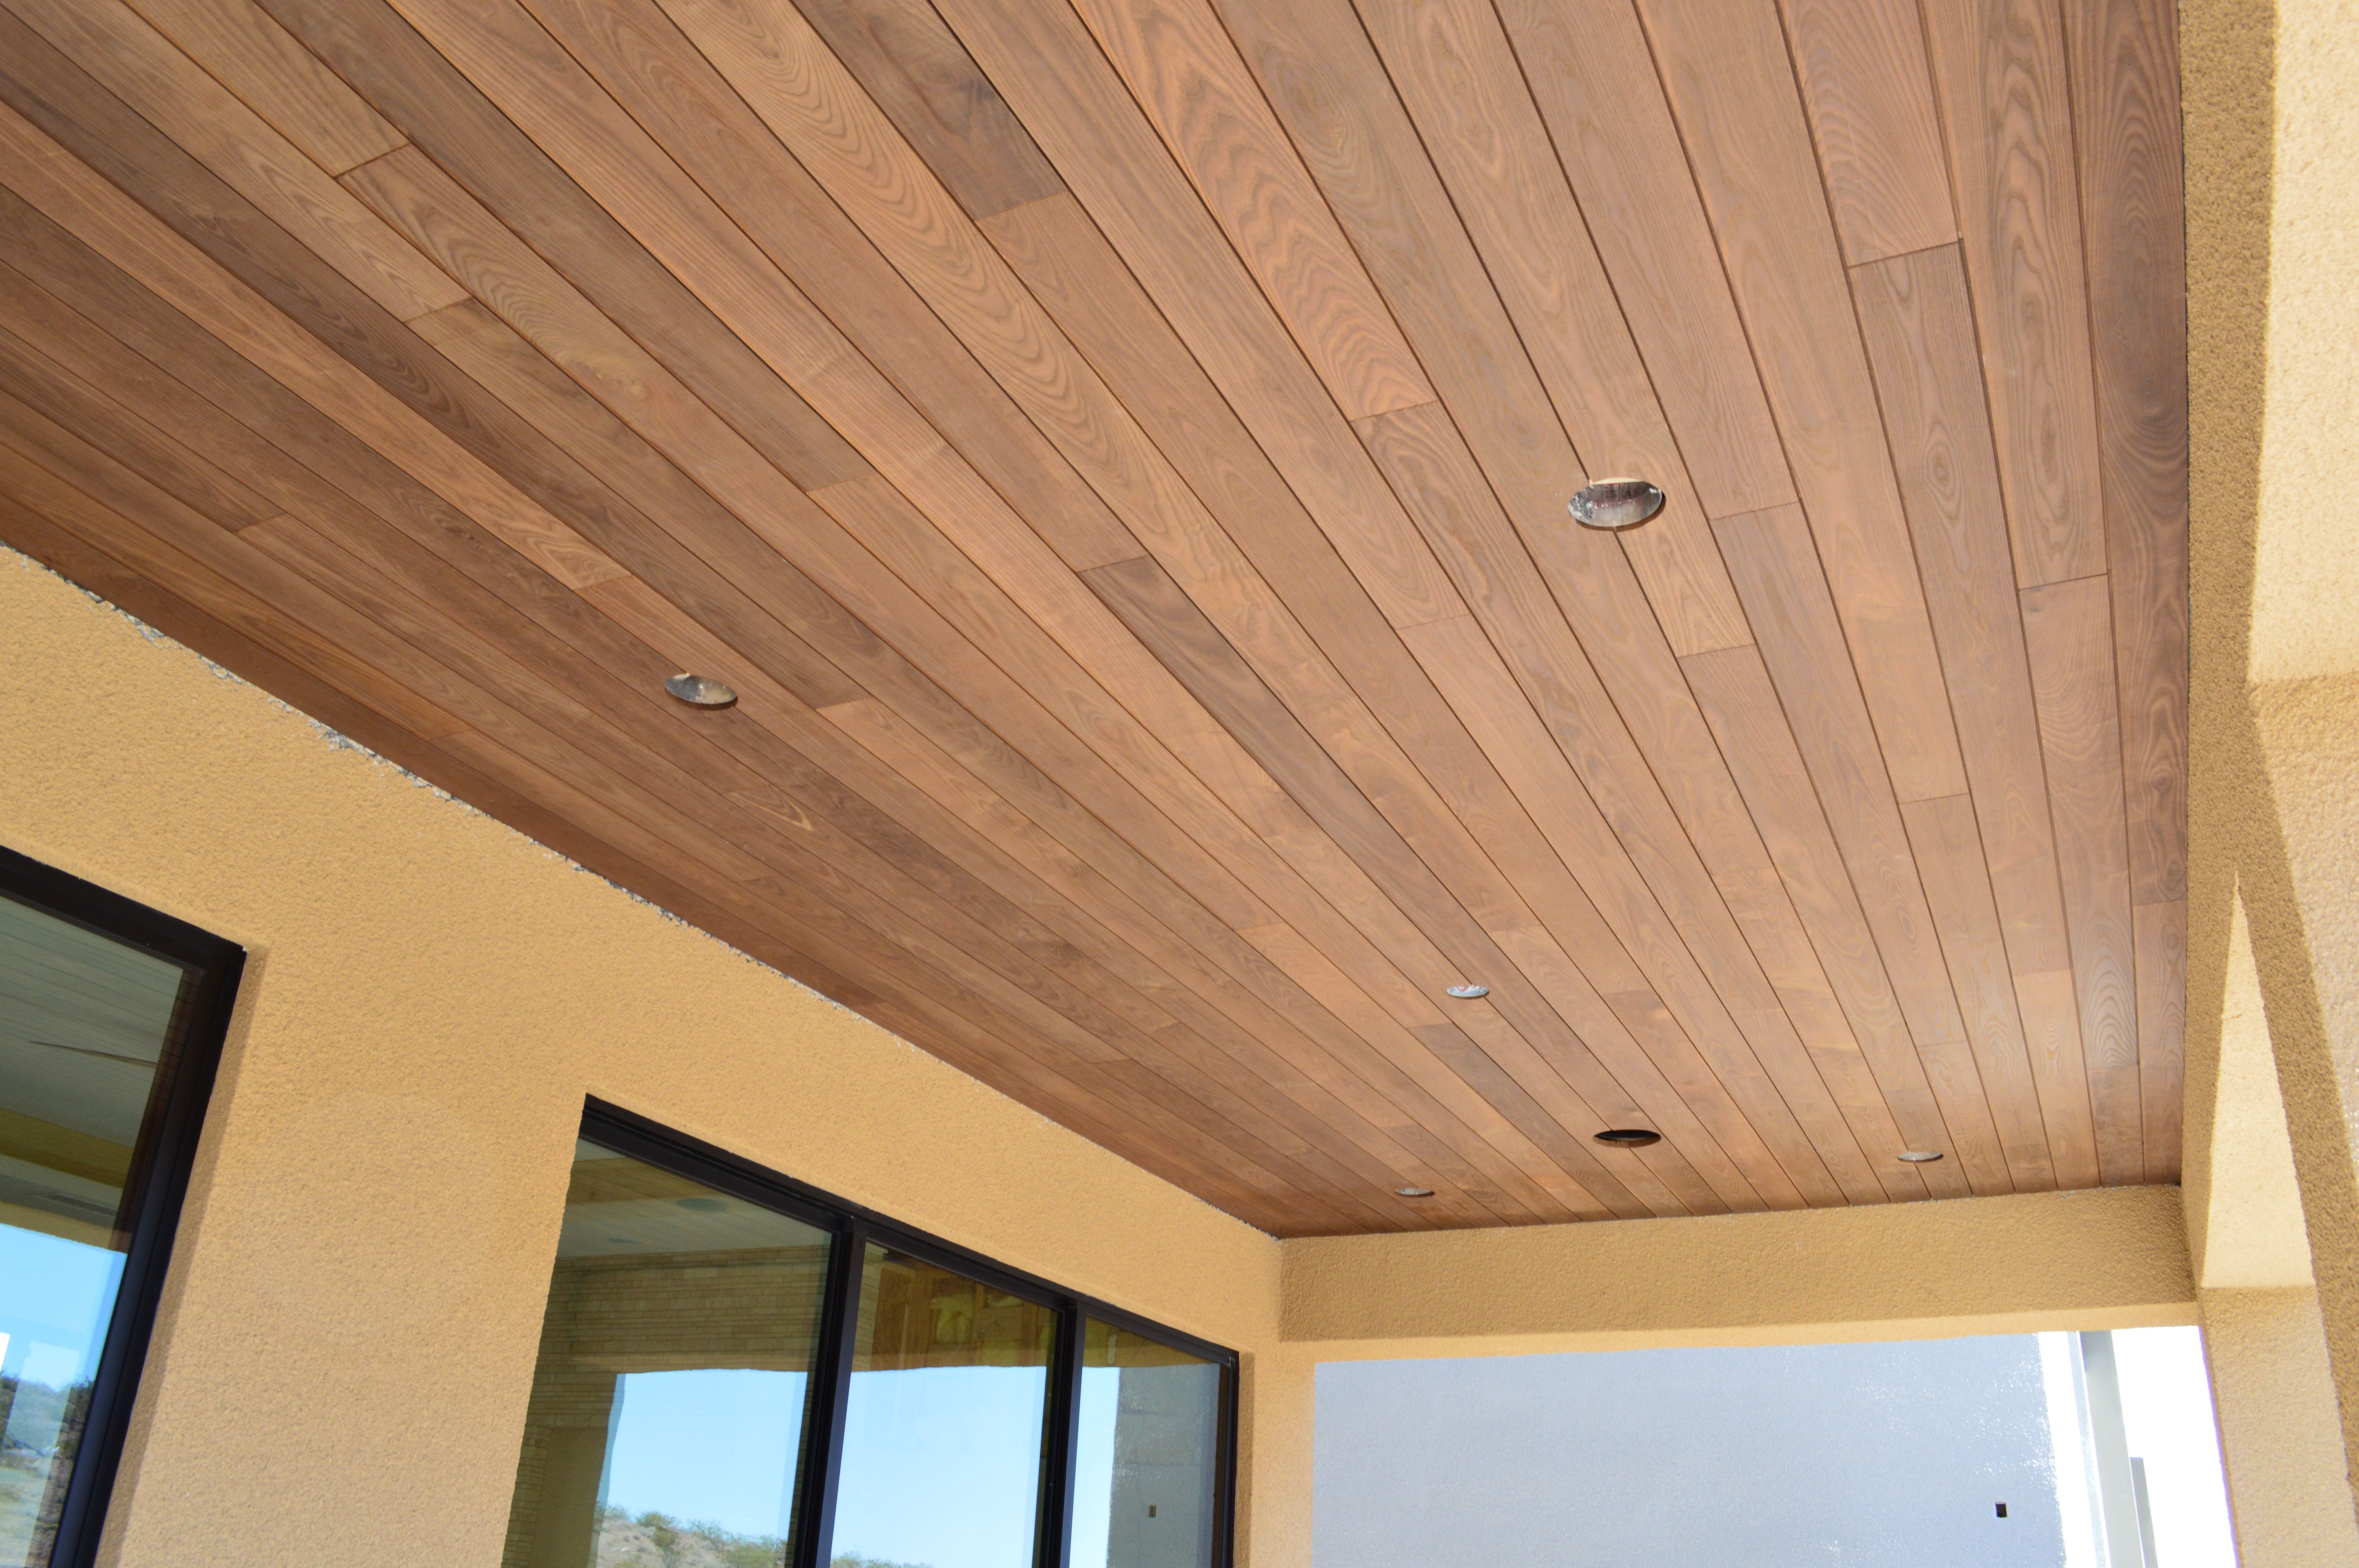 Thermory Featured On An Outside Porch Ceiling Wood Cladding Porch Ceiling Cladding